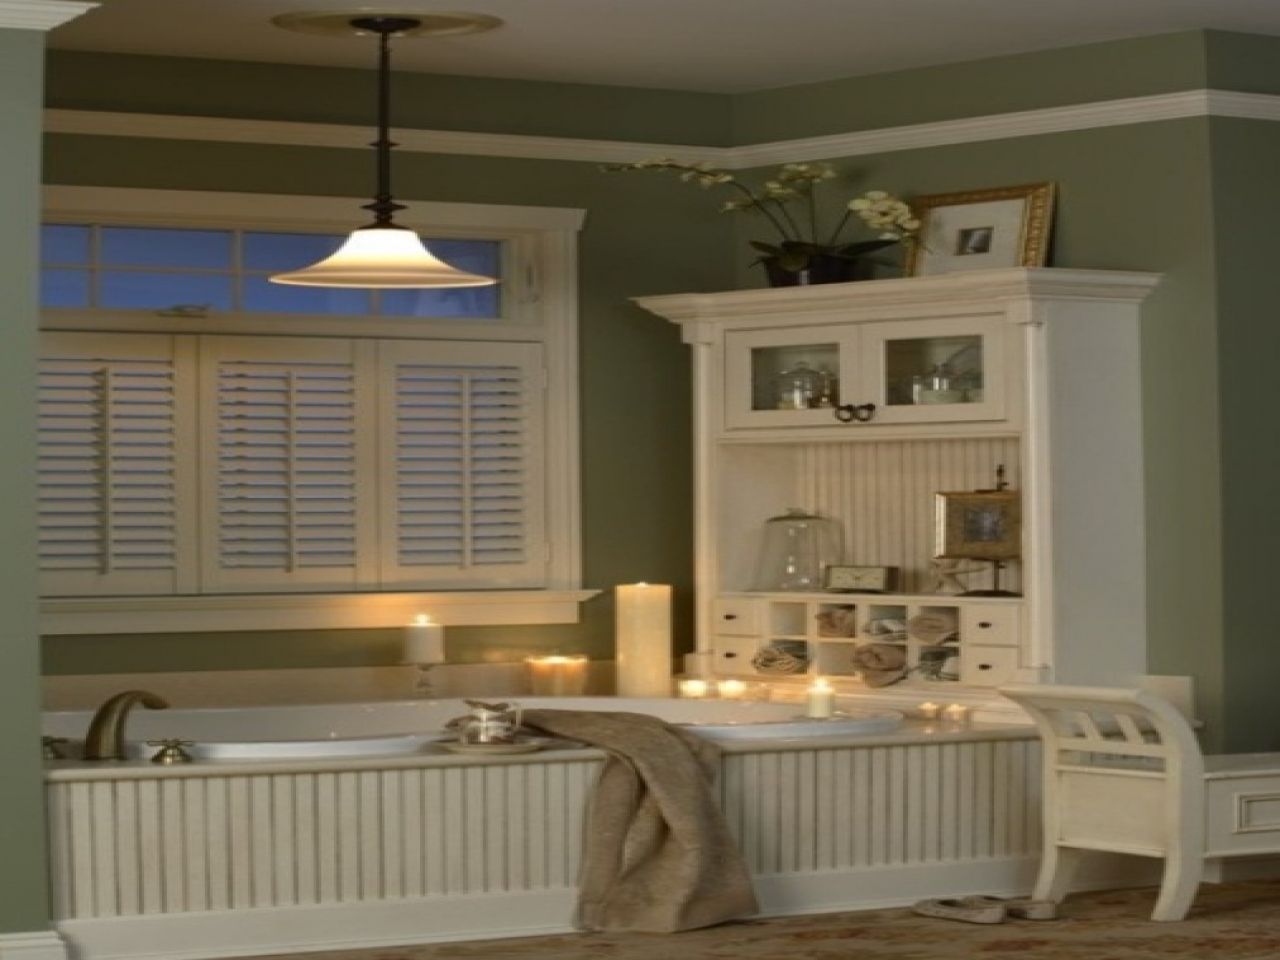 Interior design cottage style ideas best small bathroom